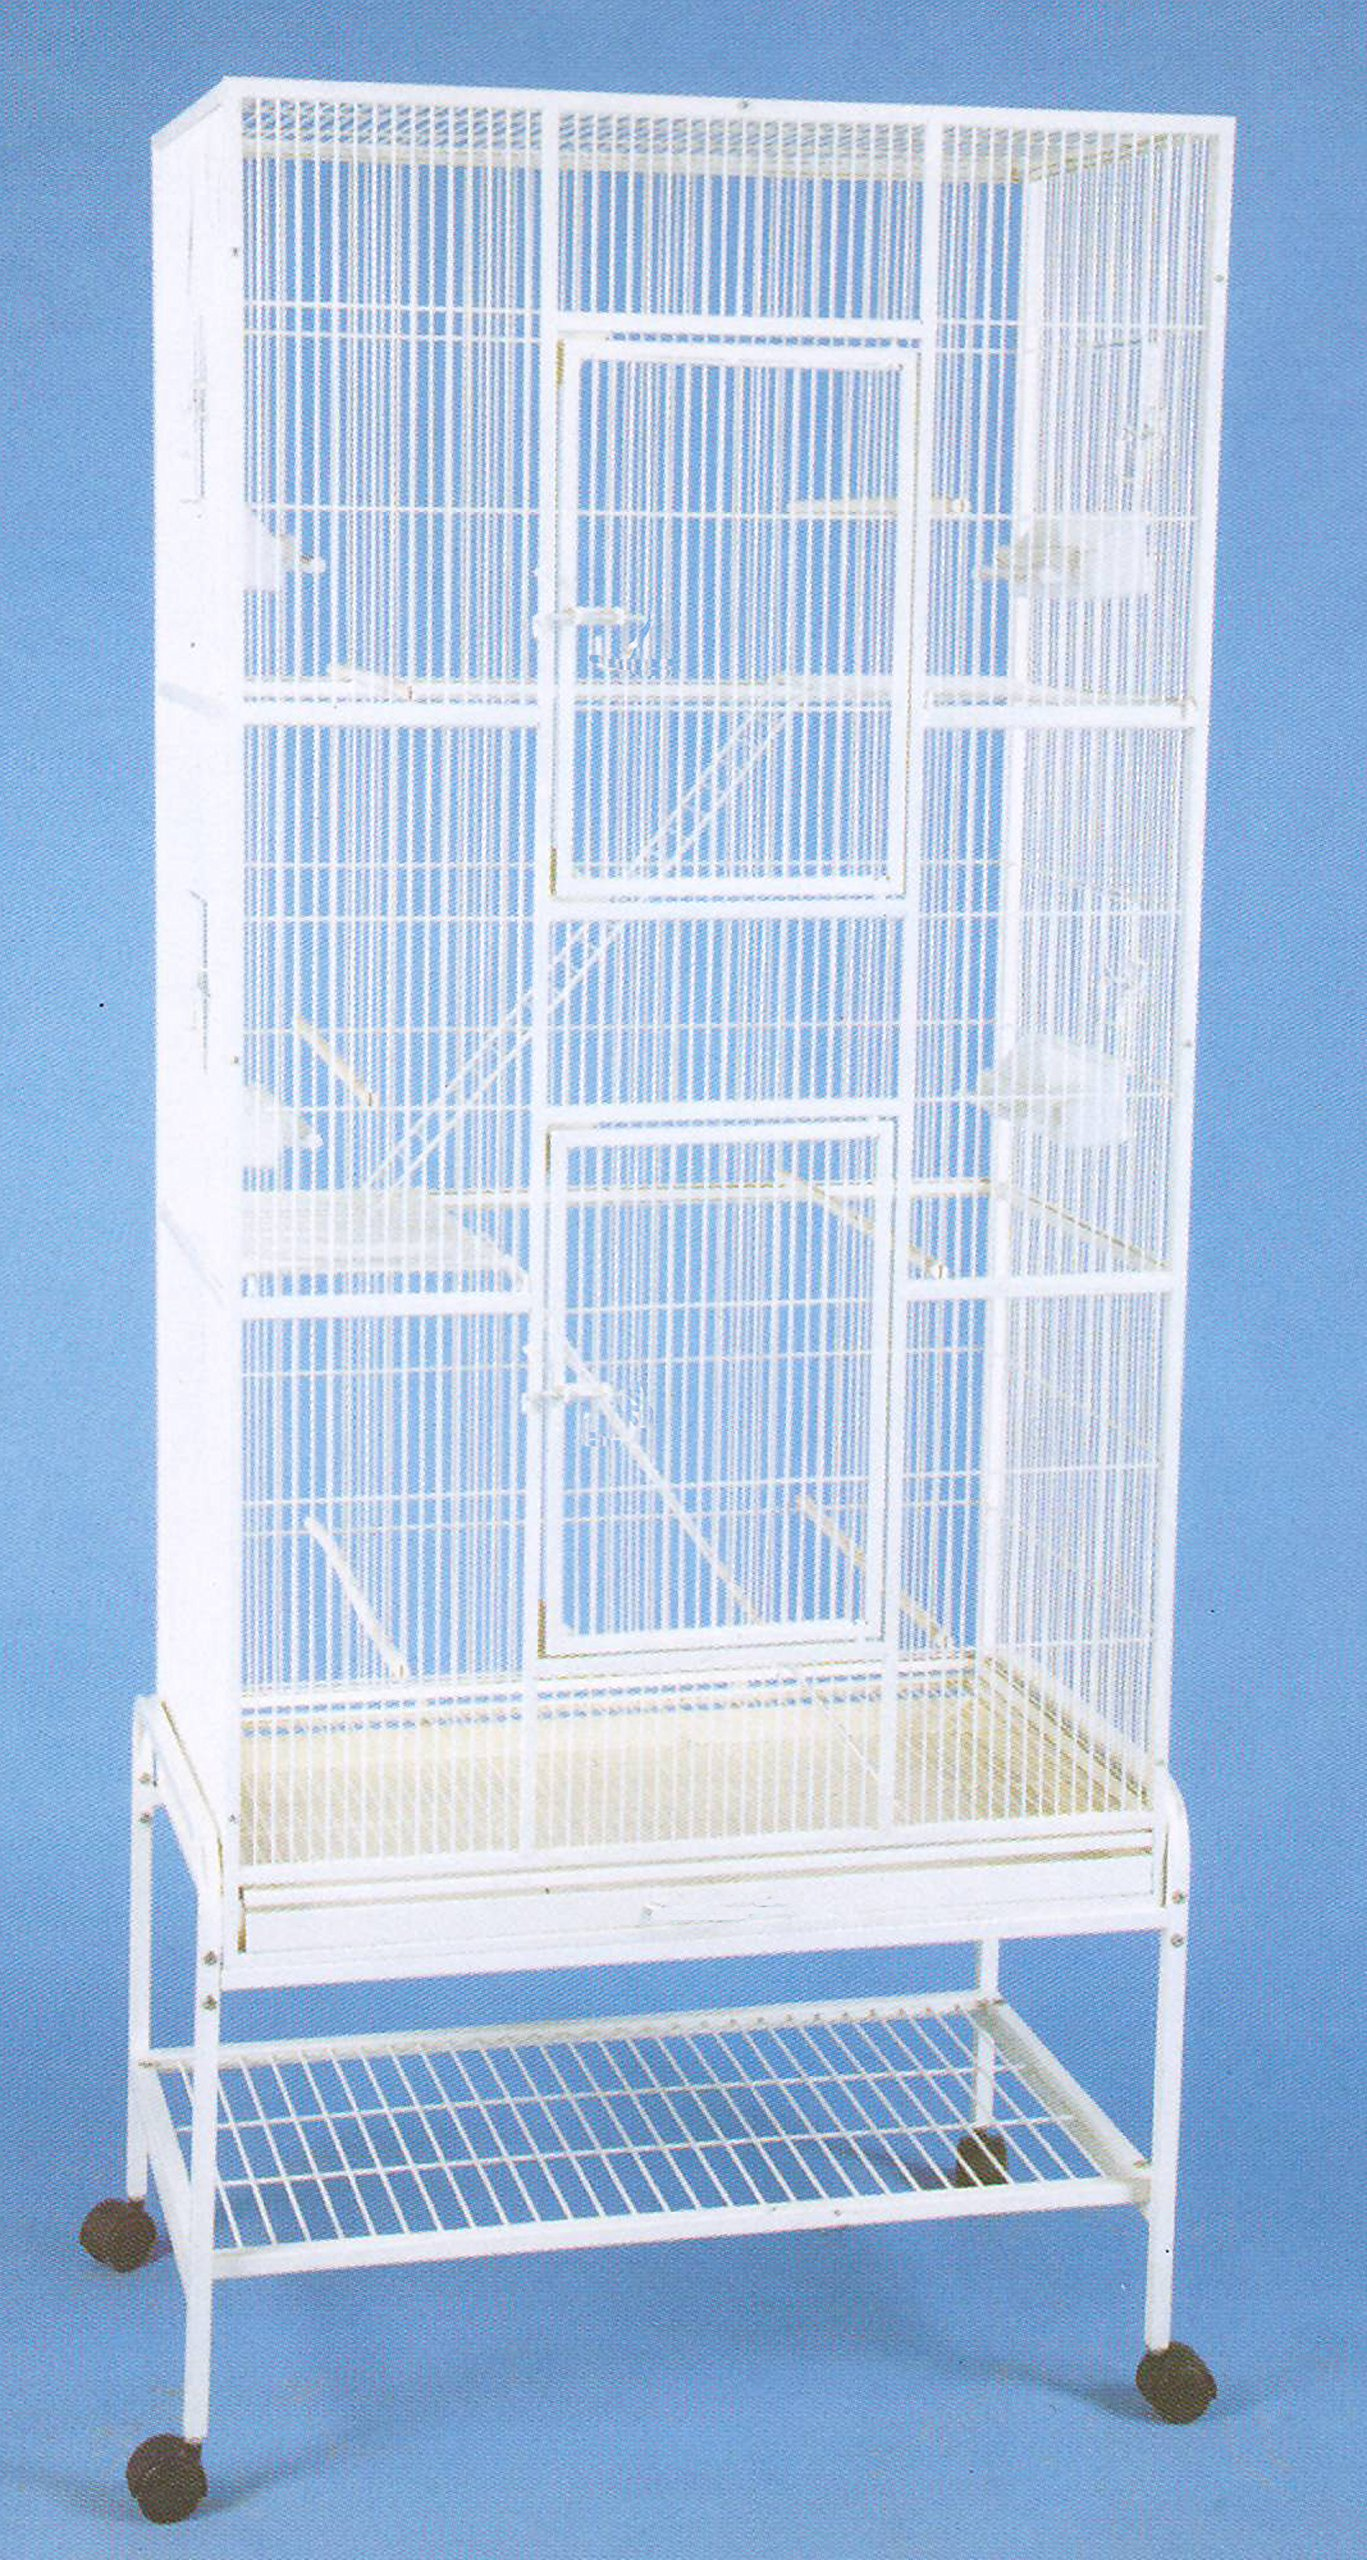 Extra Large Tall 3 Levels Ferret Chinchilla Sugar Glider Squirrel Animal Cage With 1/2 Inch Cross Shelves and Ladders, 30''Lx18''Dx72''H W/Removable Stand on Wheels